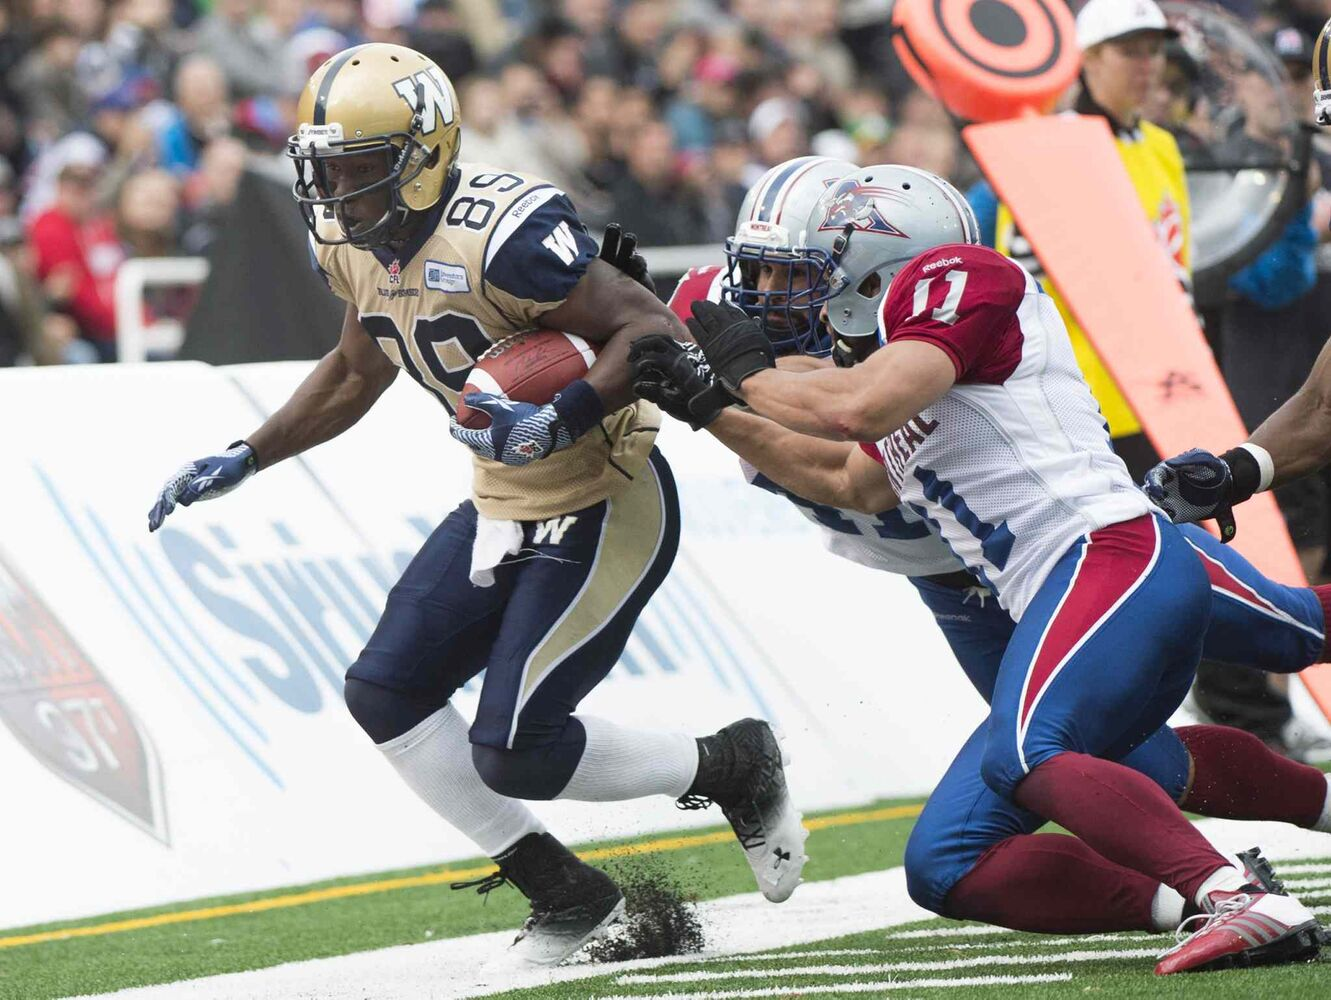 Winnipeg Blue Bombers' Clarence Denmark, left, is tackled by Montreal Alouettes' Chip Cox (11) and Shea Emry during second half CFL football action in Montreal Monday. (Graham Hughes / The Canadian Press)